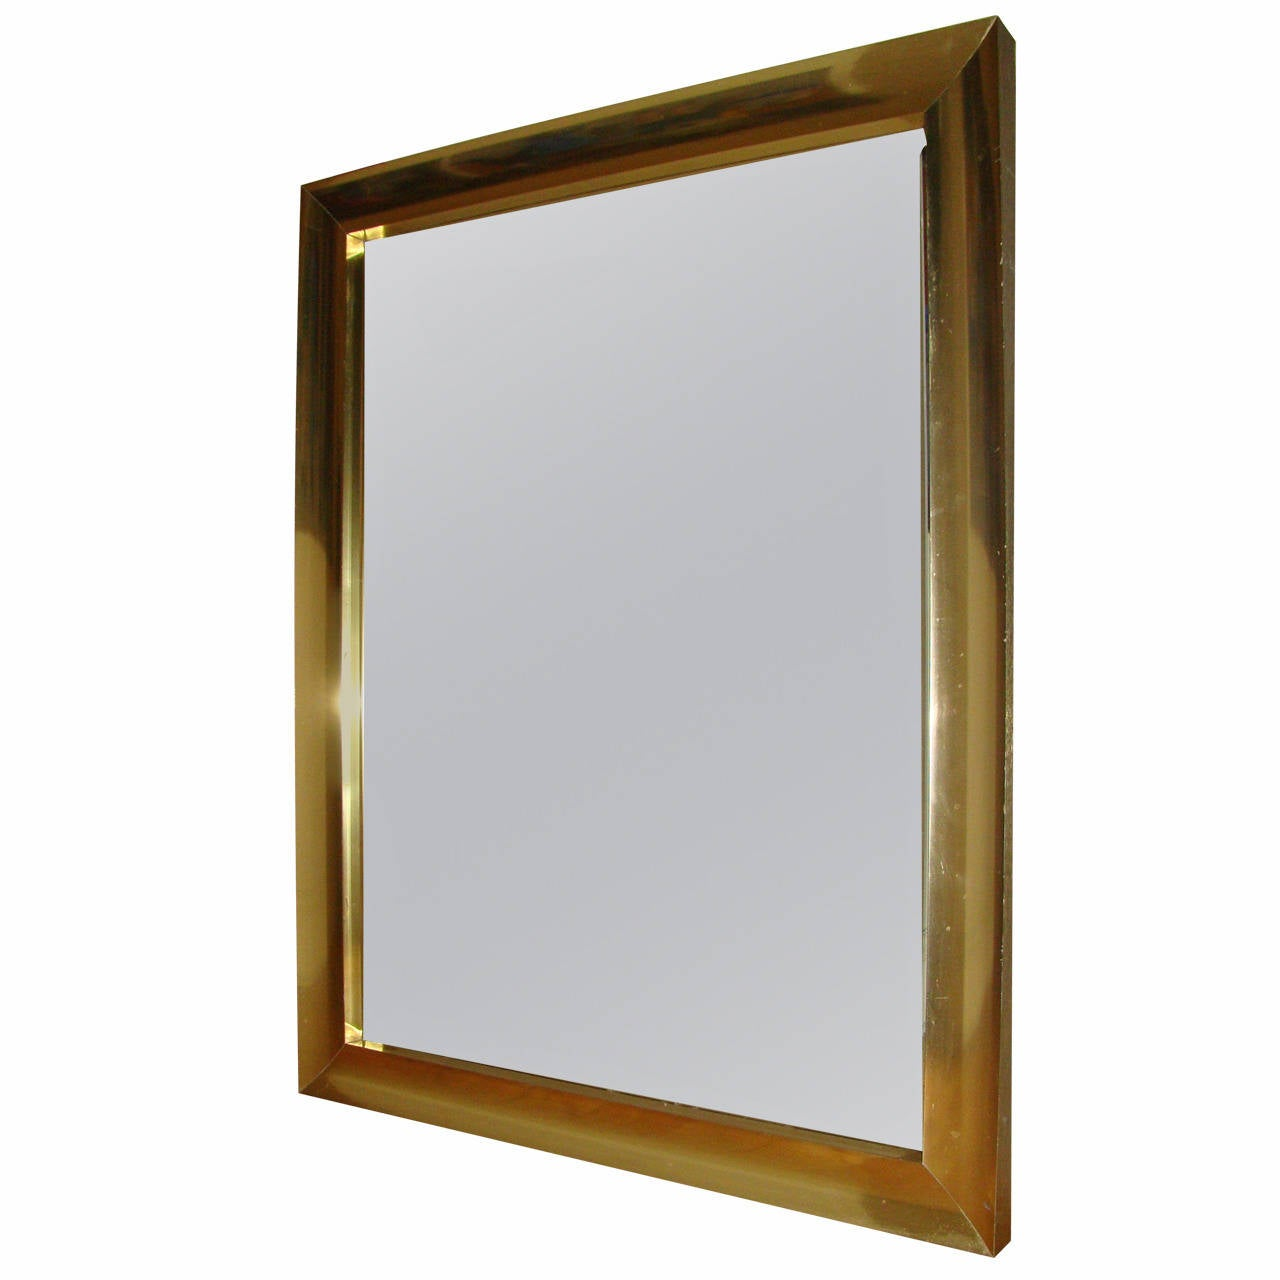 Large scale mid century brass wall hanging mirror 1970s for Hanging a large mirror